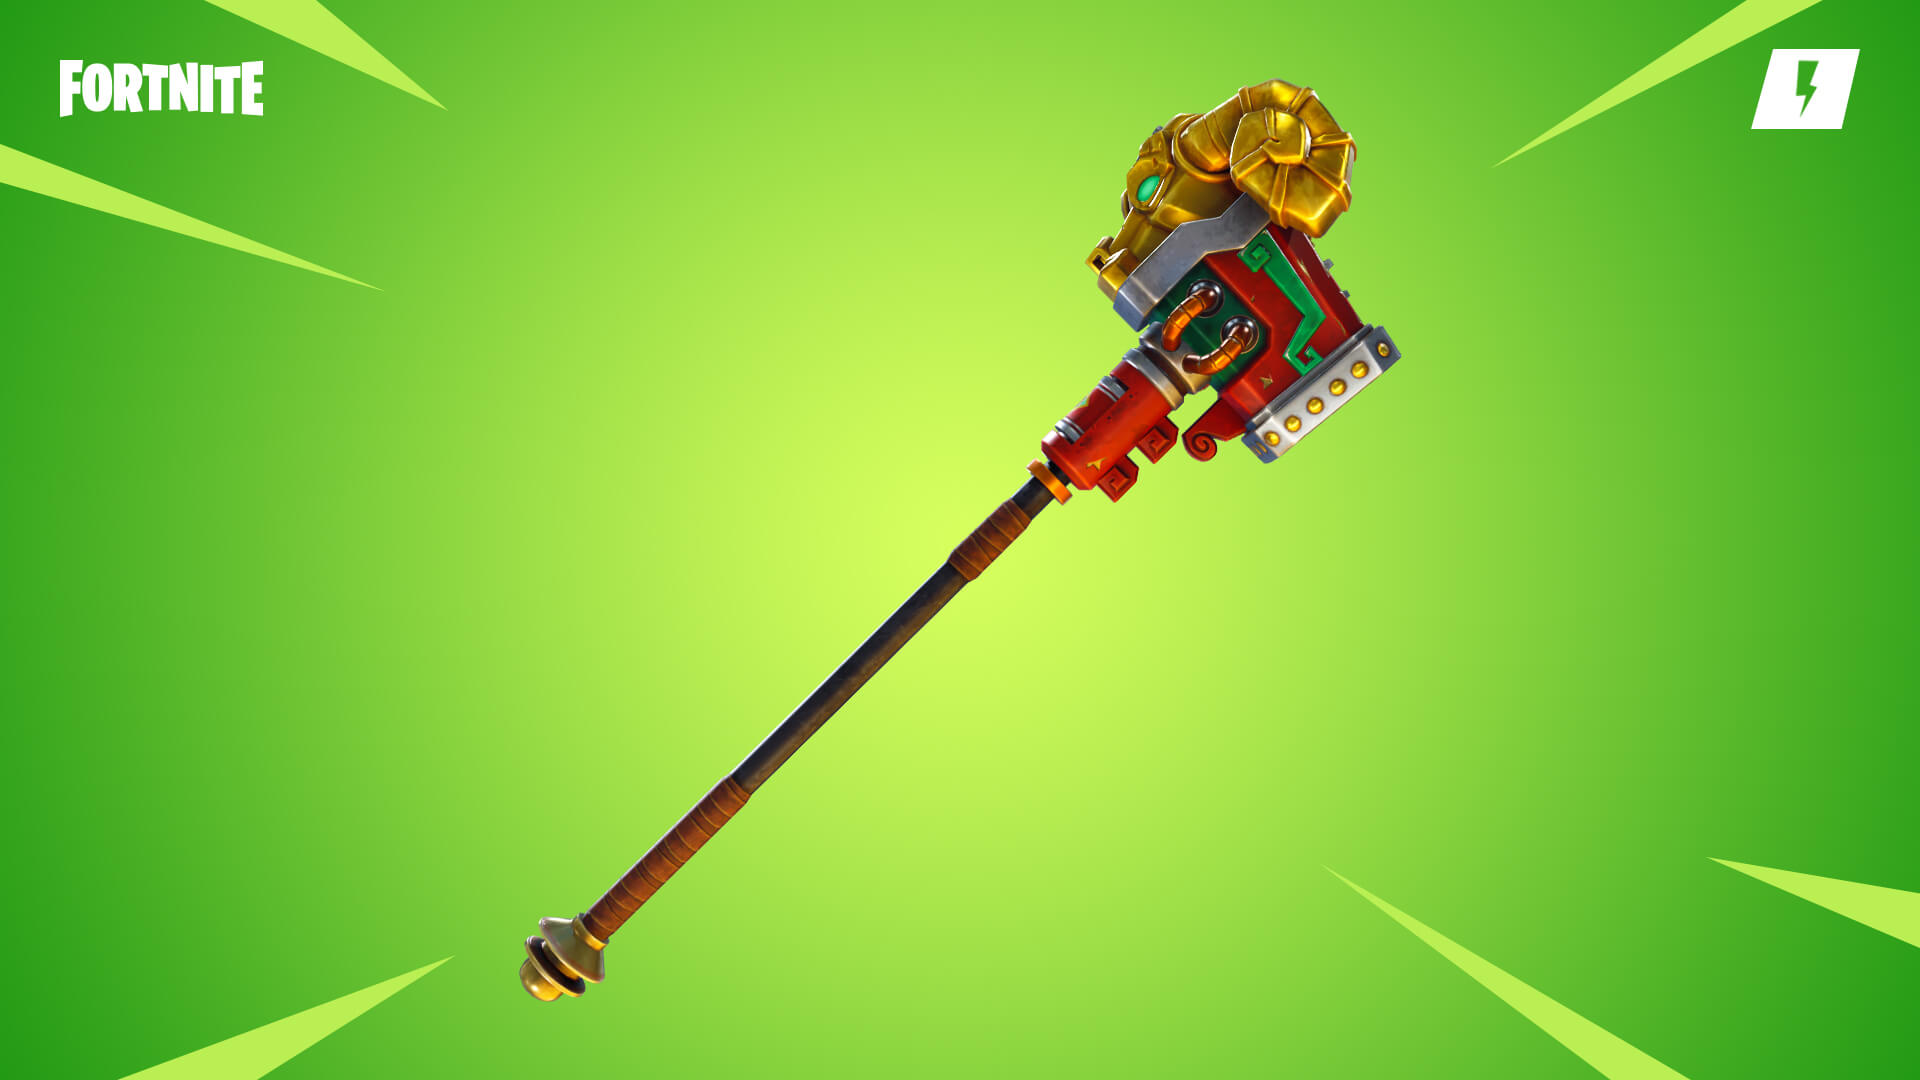 Fortnite Save the World Dragon's Fist Weapon